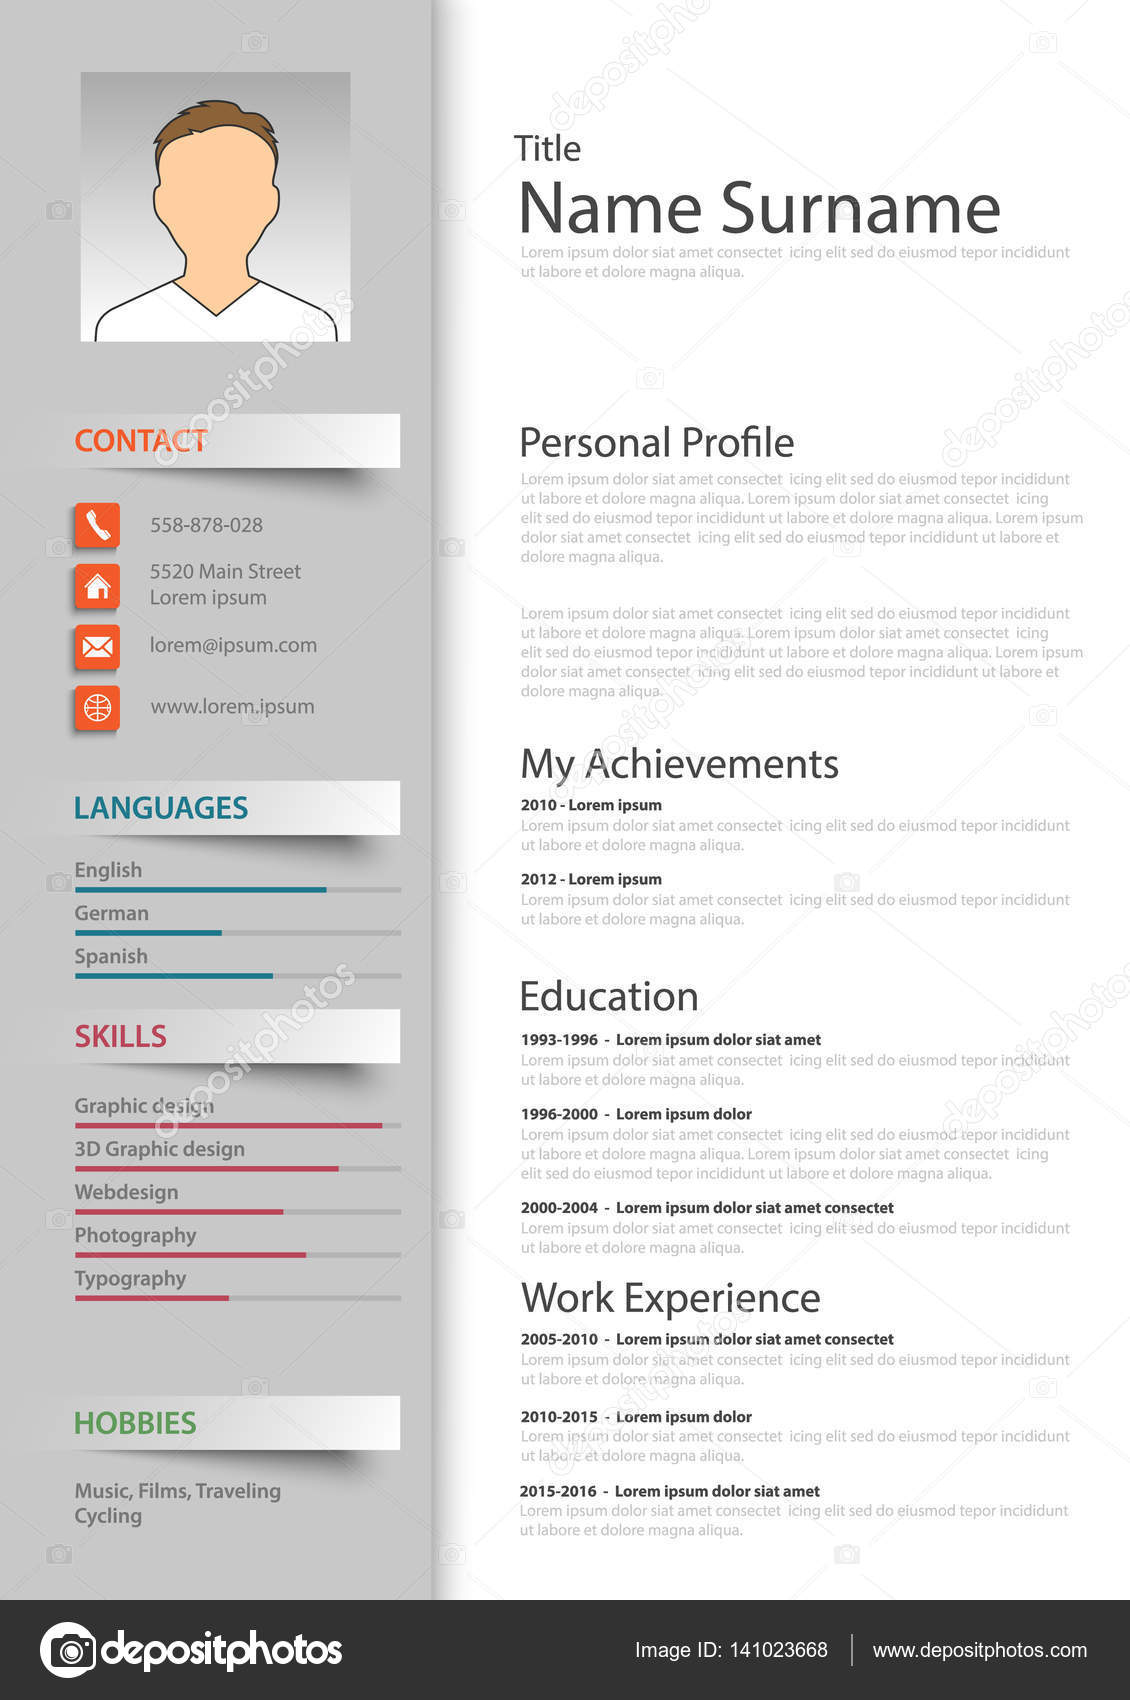 Professional resume cv template \u2014 Stock Vector © Plisman #141023668